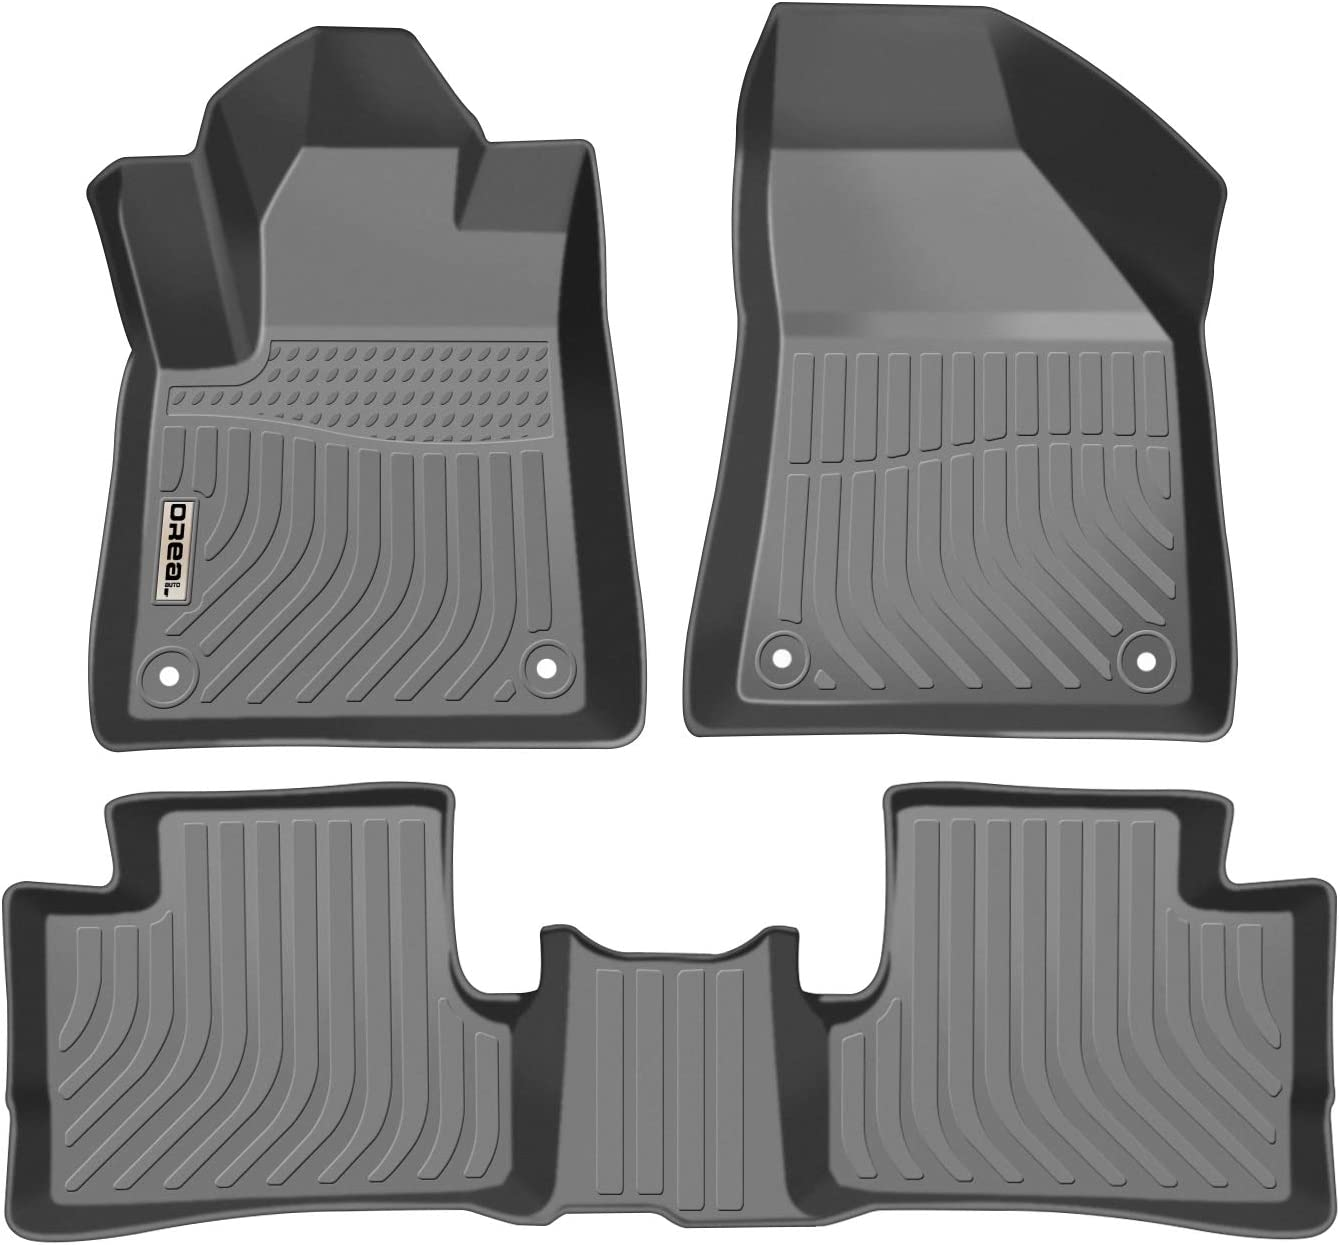 Car floor mat Fits for Jeep Grand Cherokee 2017 Easy to clean odorless